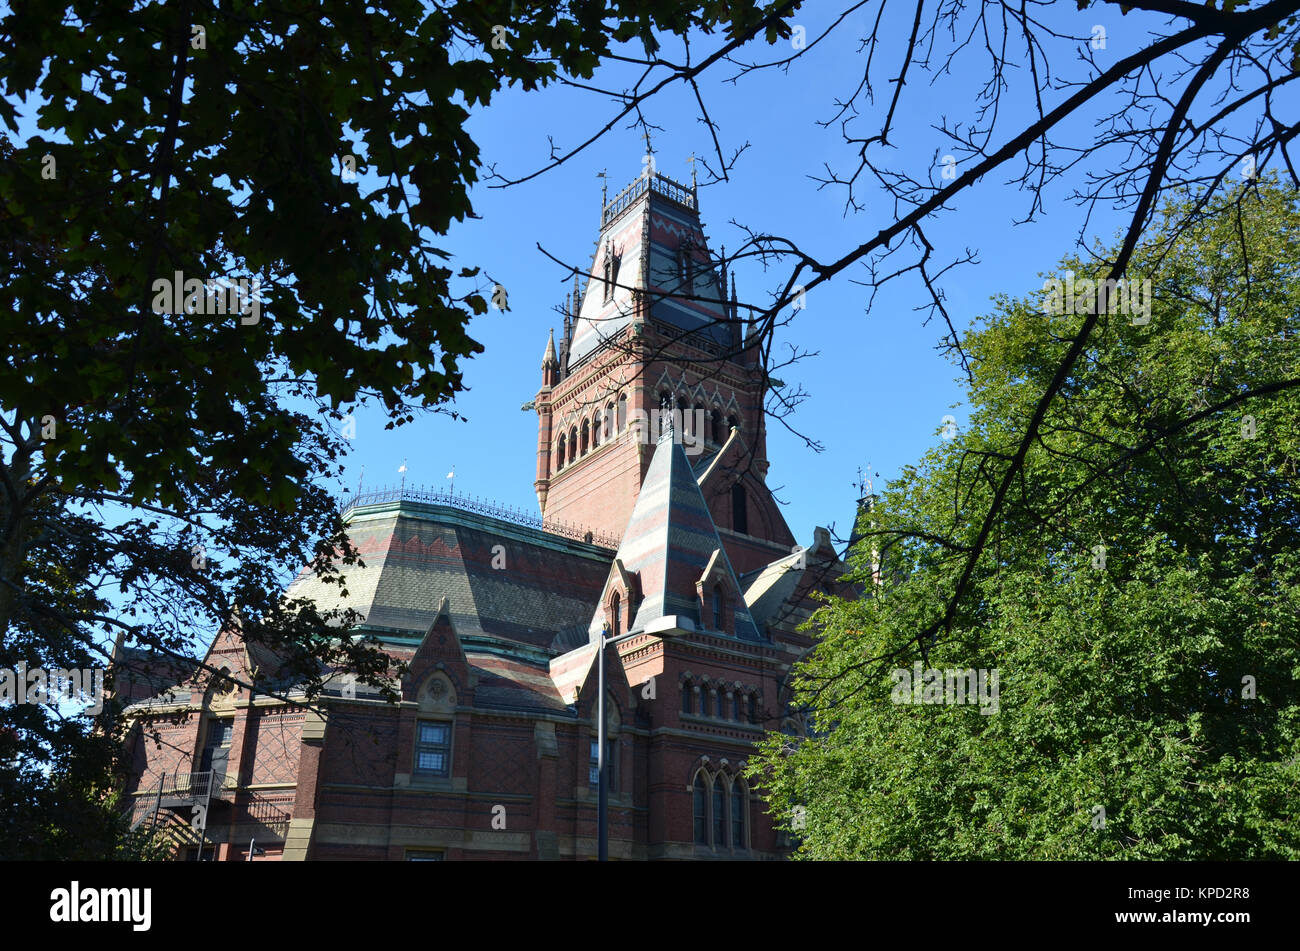 Exterior of the Memorial Hall of Harvard university in Cambridge,  Massachusetts, USA - Stock Image